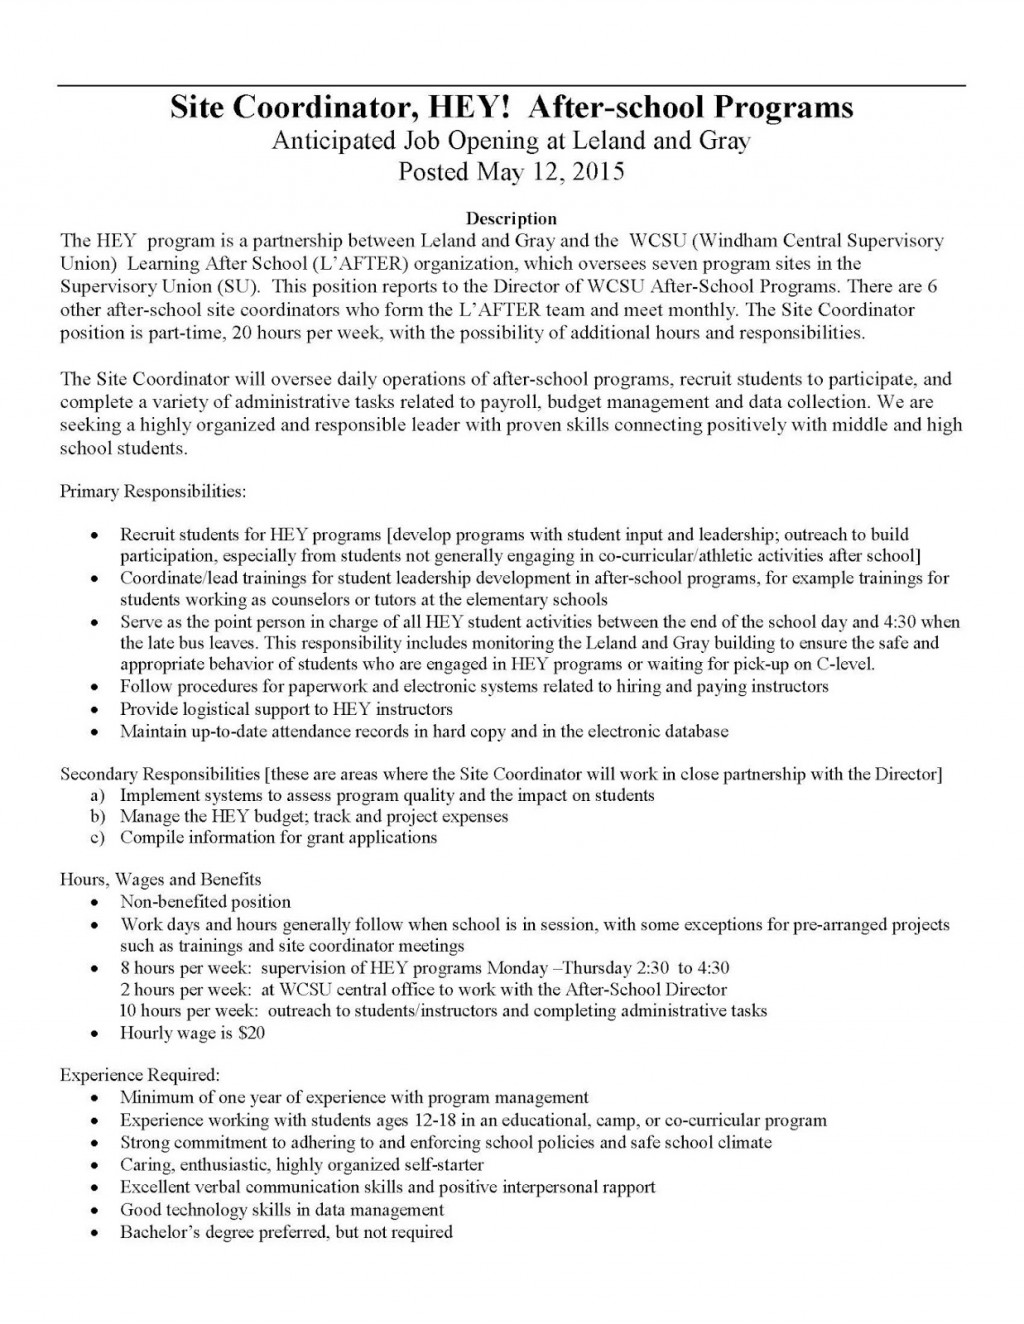 006 Heysitecoord Job Posting May201528129 Page 1 Thesis Generator For Research Remarkable Paper Statement Free Large